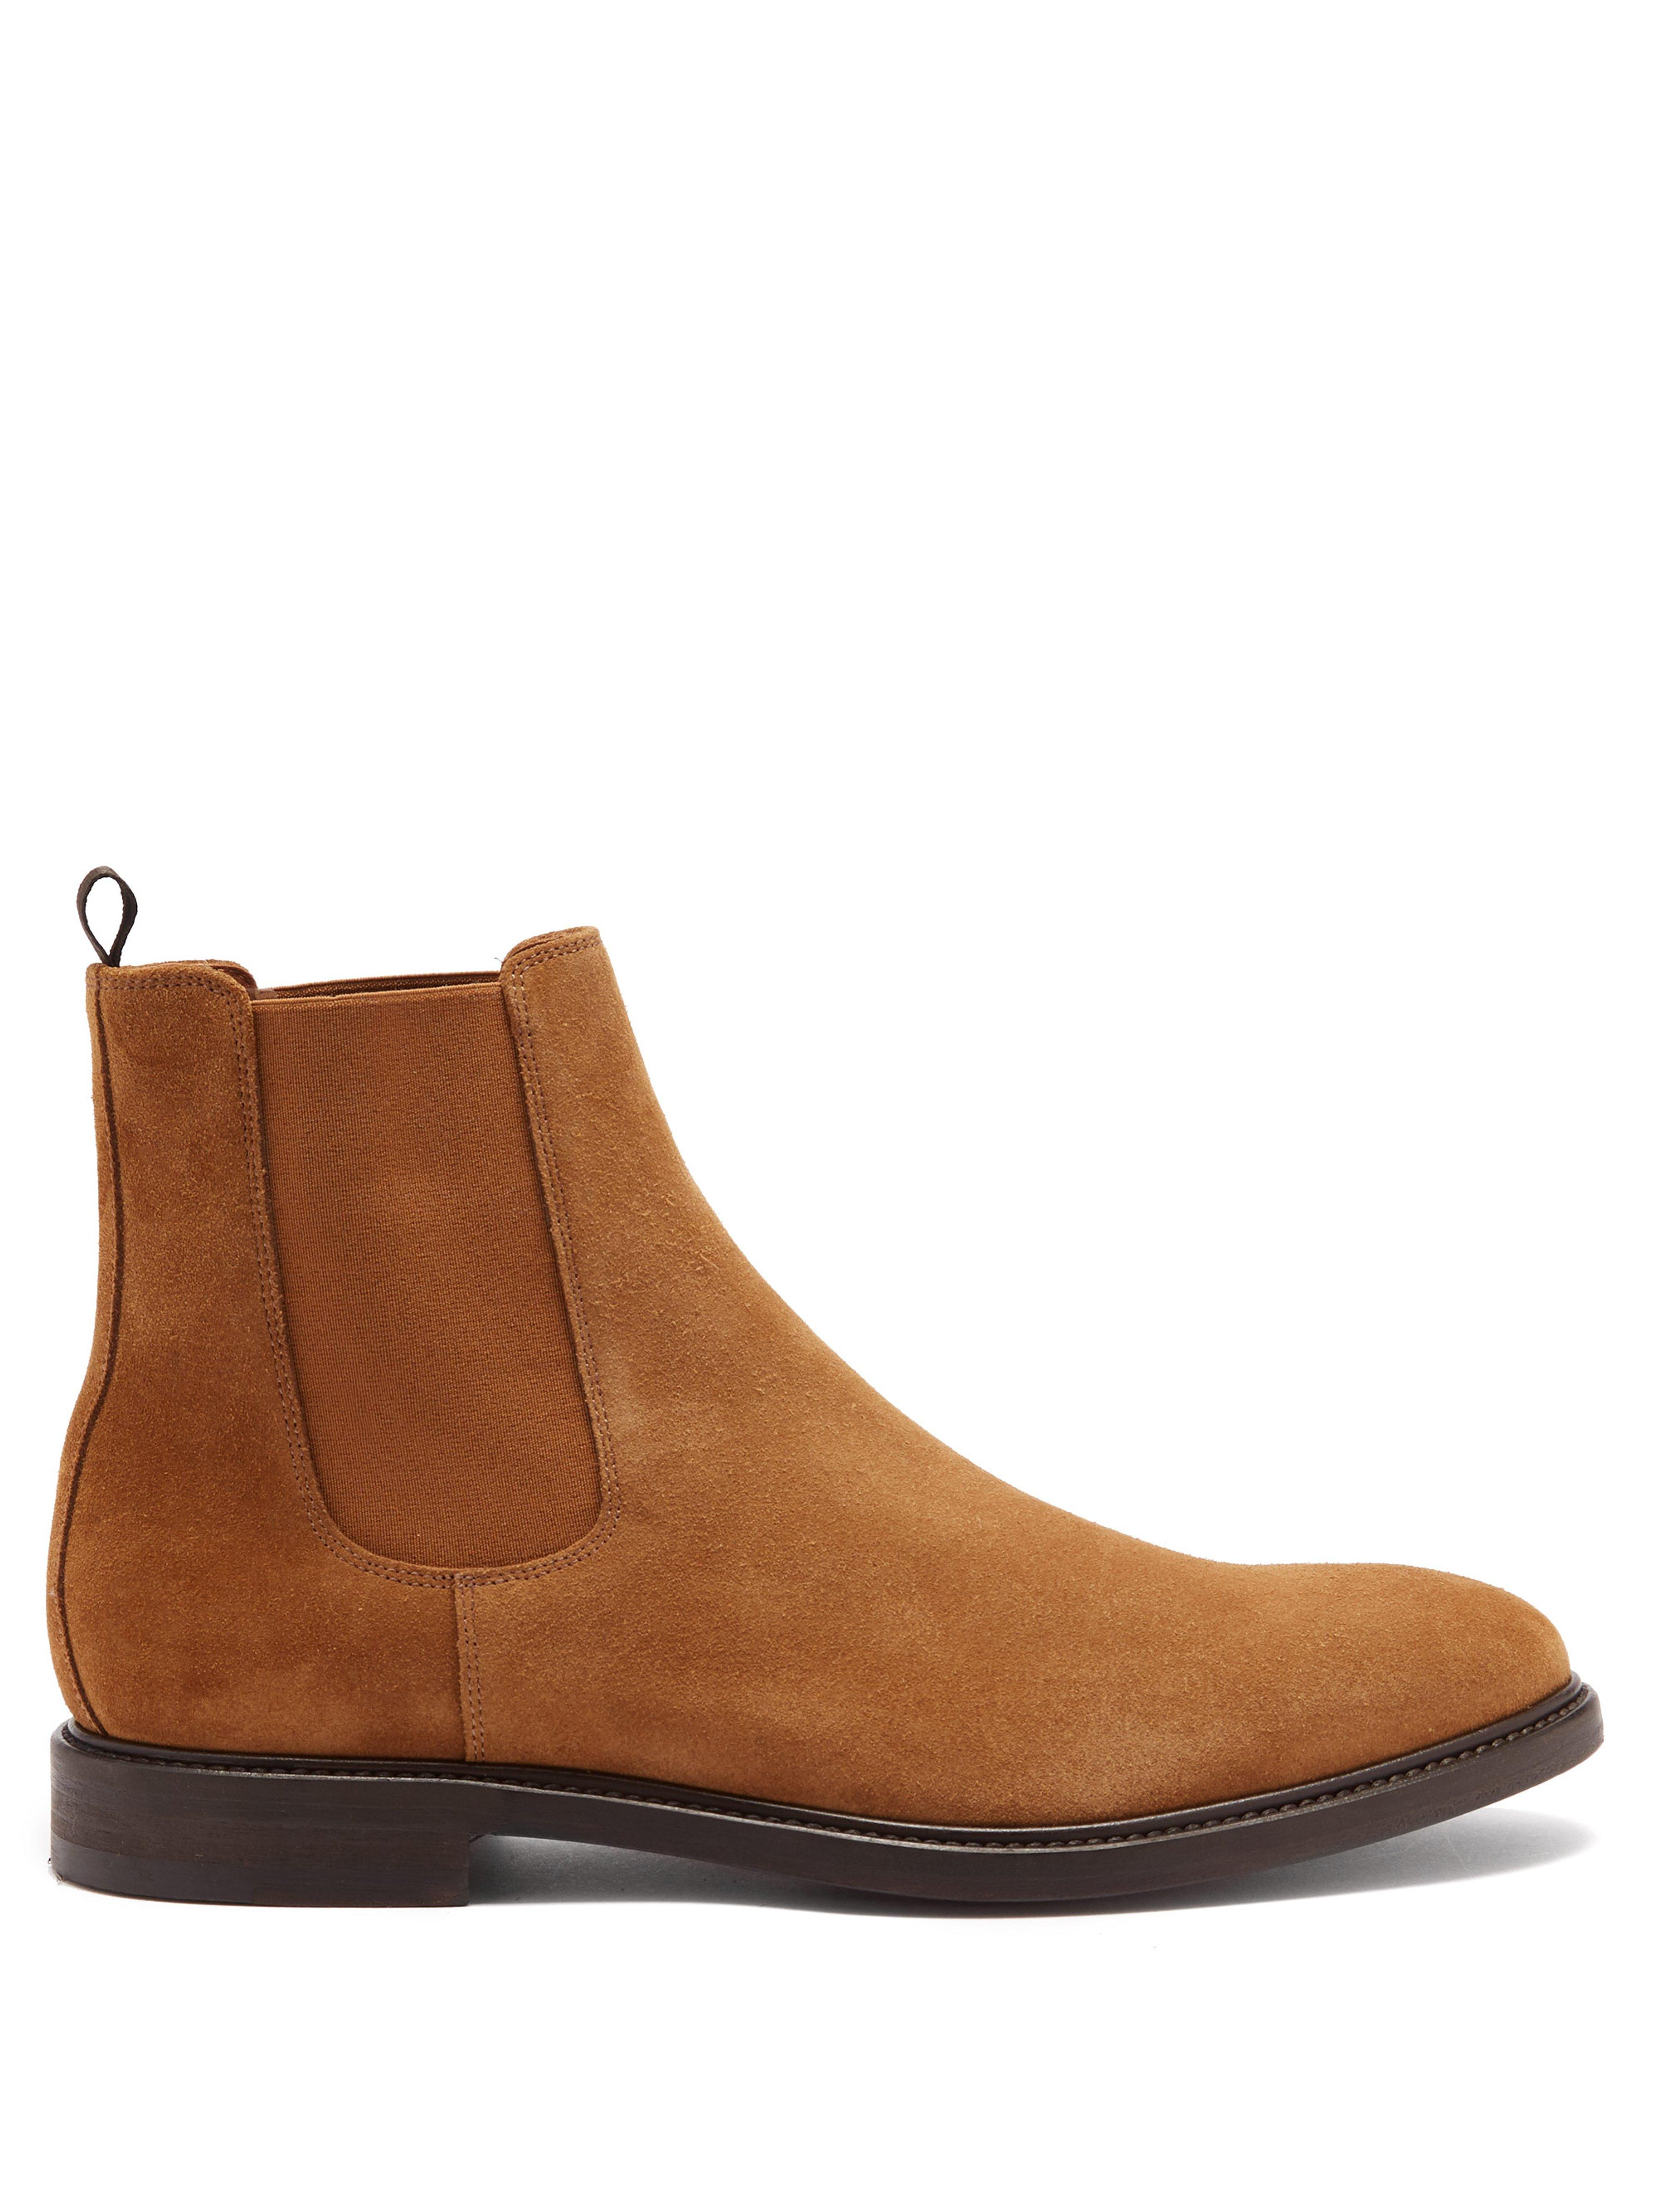 cc42da13920 Paul Smith Jake Suede Chelsea Boots in Brown for Men - Lyst